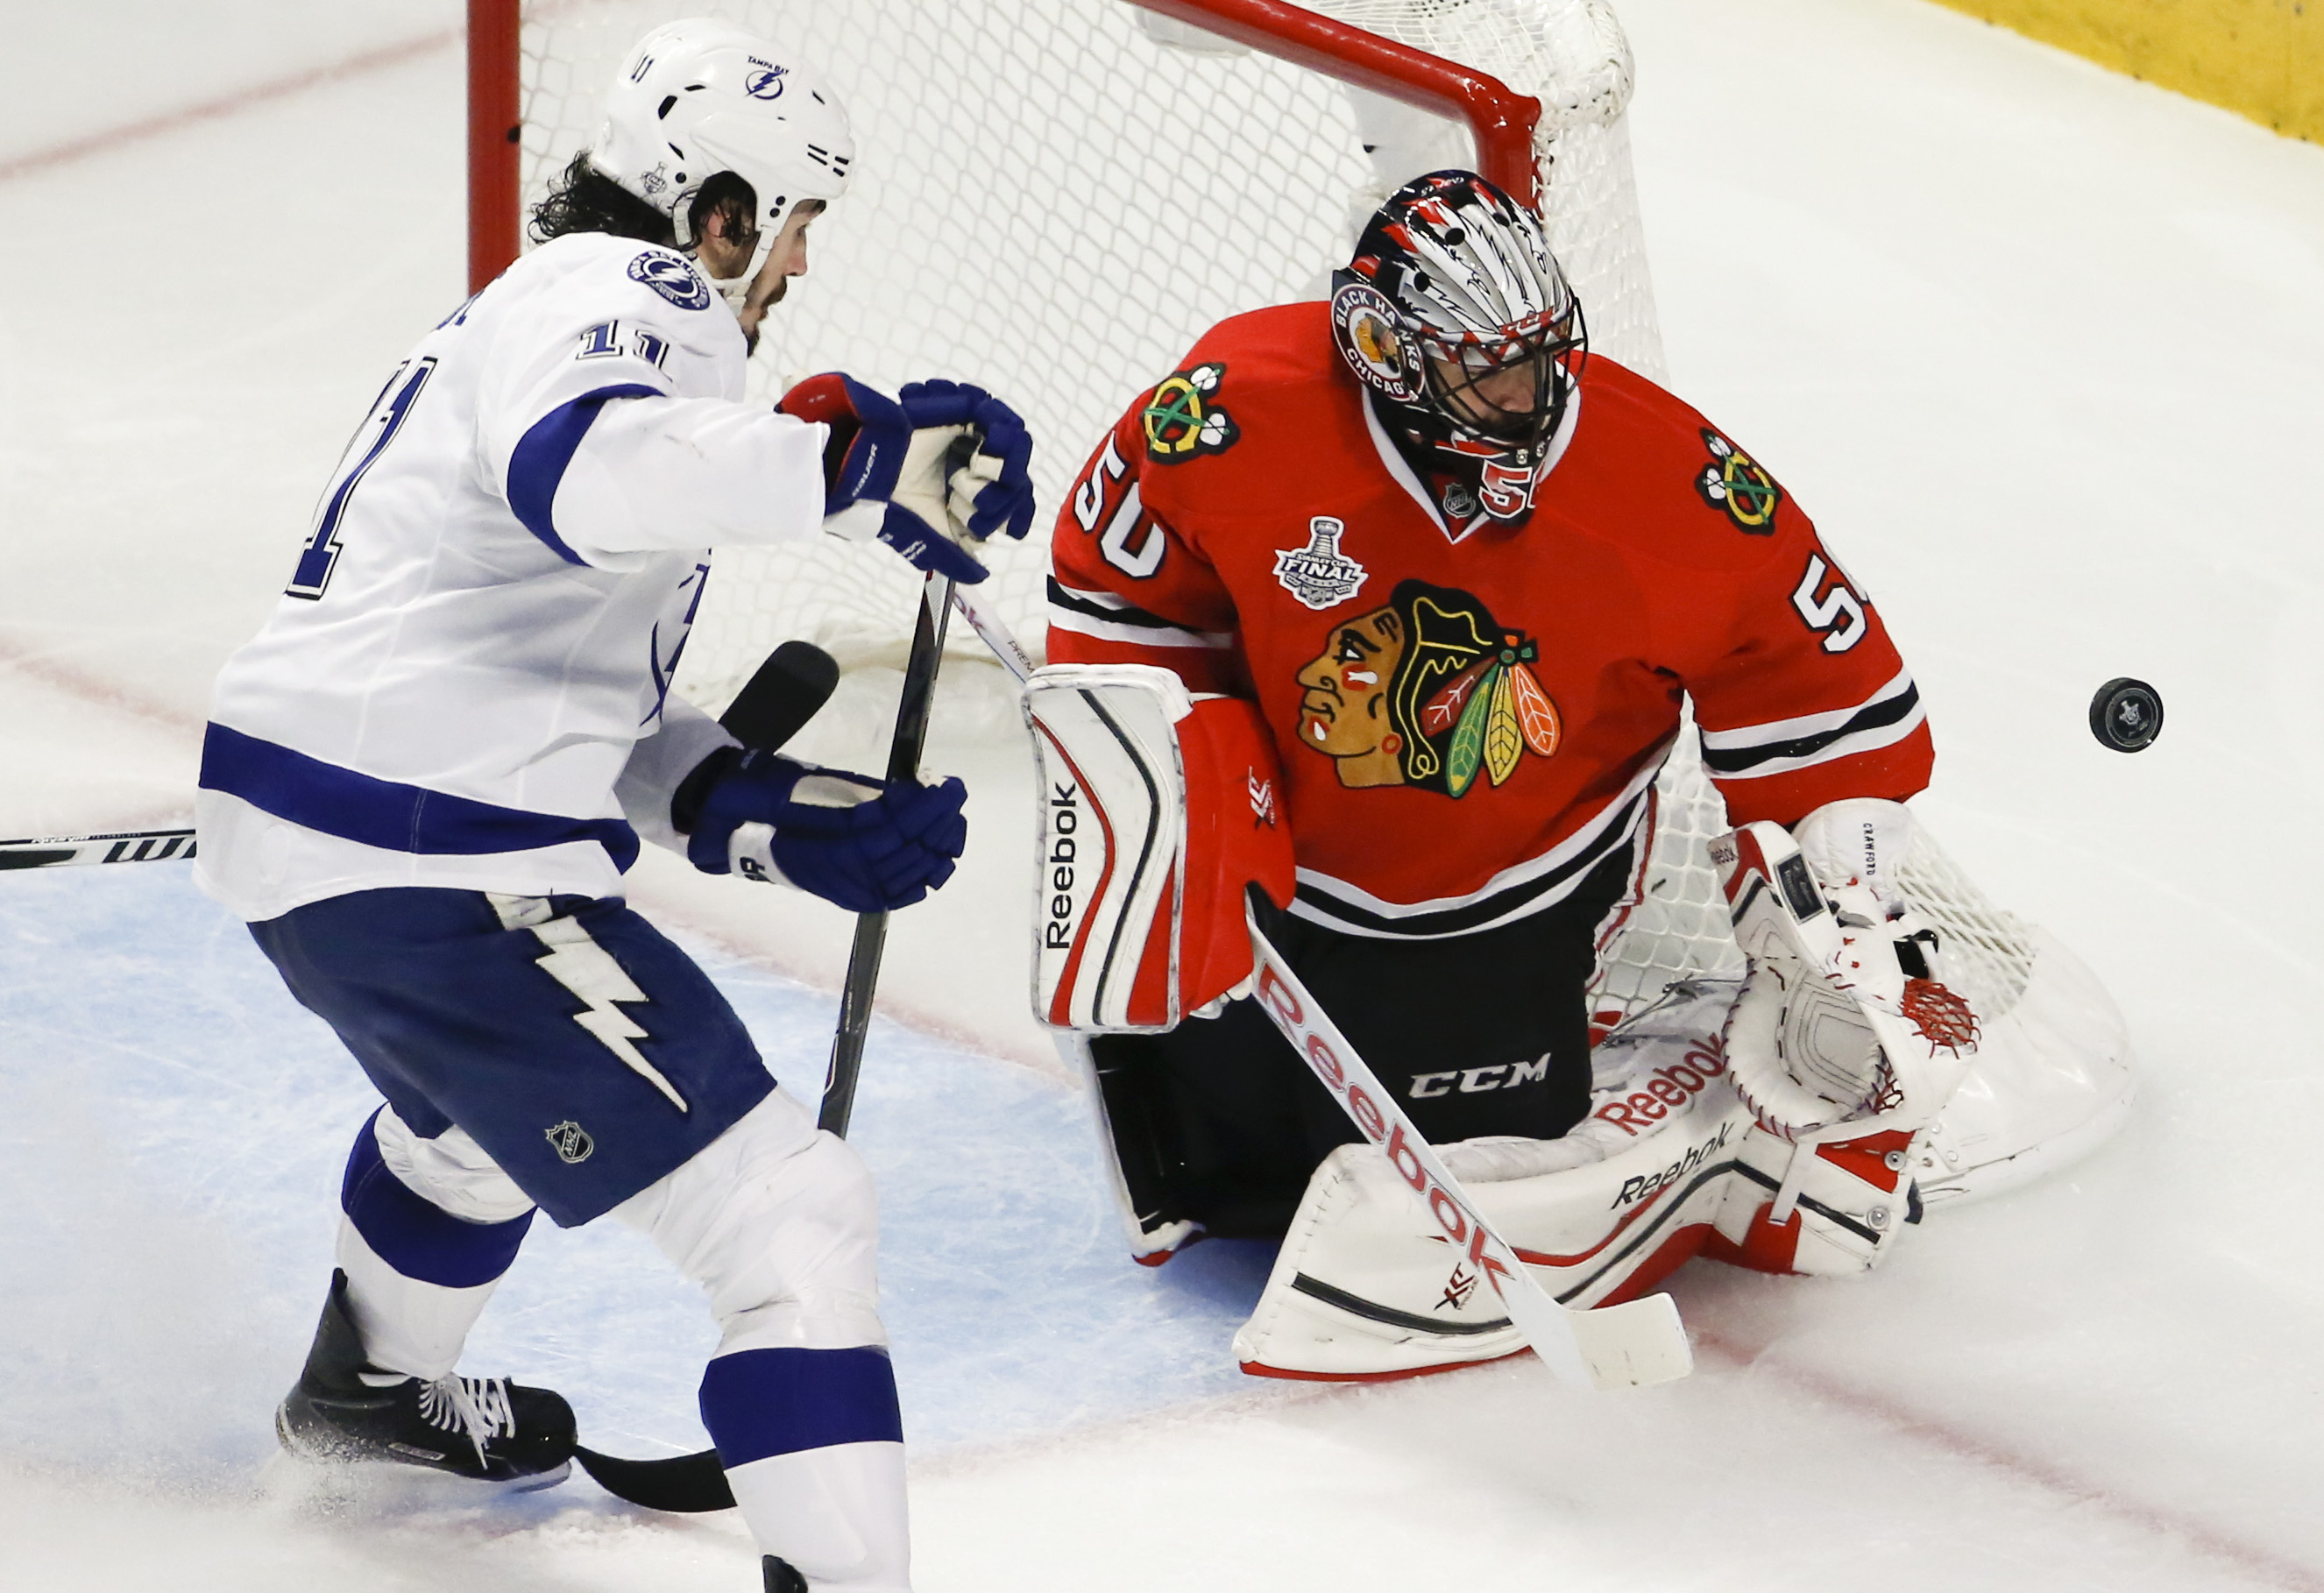 Chicago Blackhawks goalie Corey Crawford, right, deflects a puck as Tampa Bay Lightning's Brian Boyle watches during the third period in Game 4 of the NHL hockey Stanley Cup Final Wednesday, June 10, 2015, in Chicago. (AP Photo/Charles Rex Arbogast)